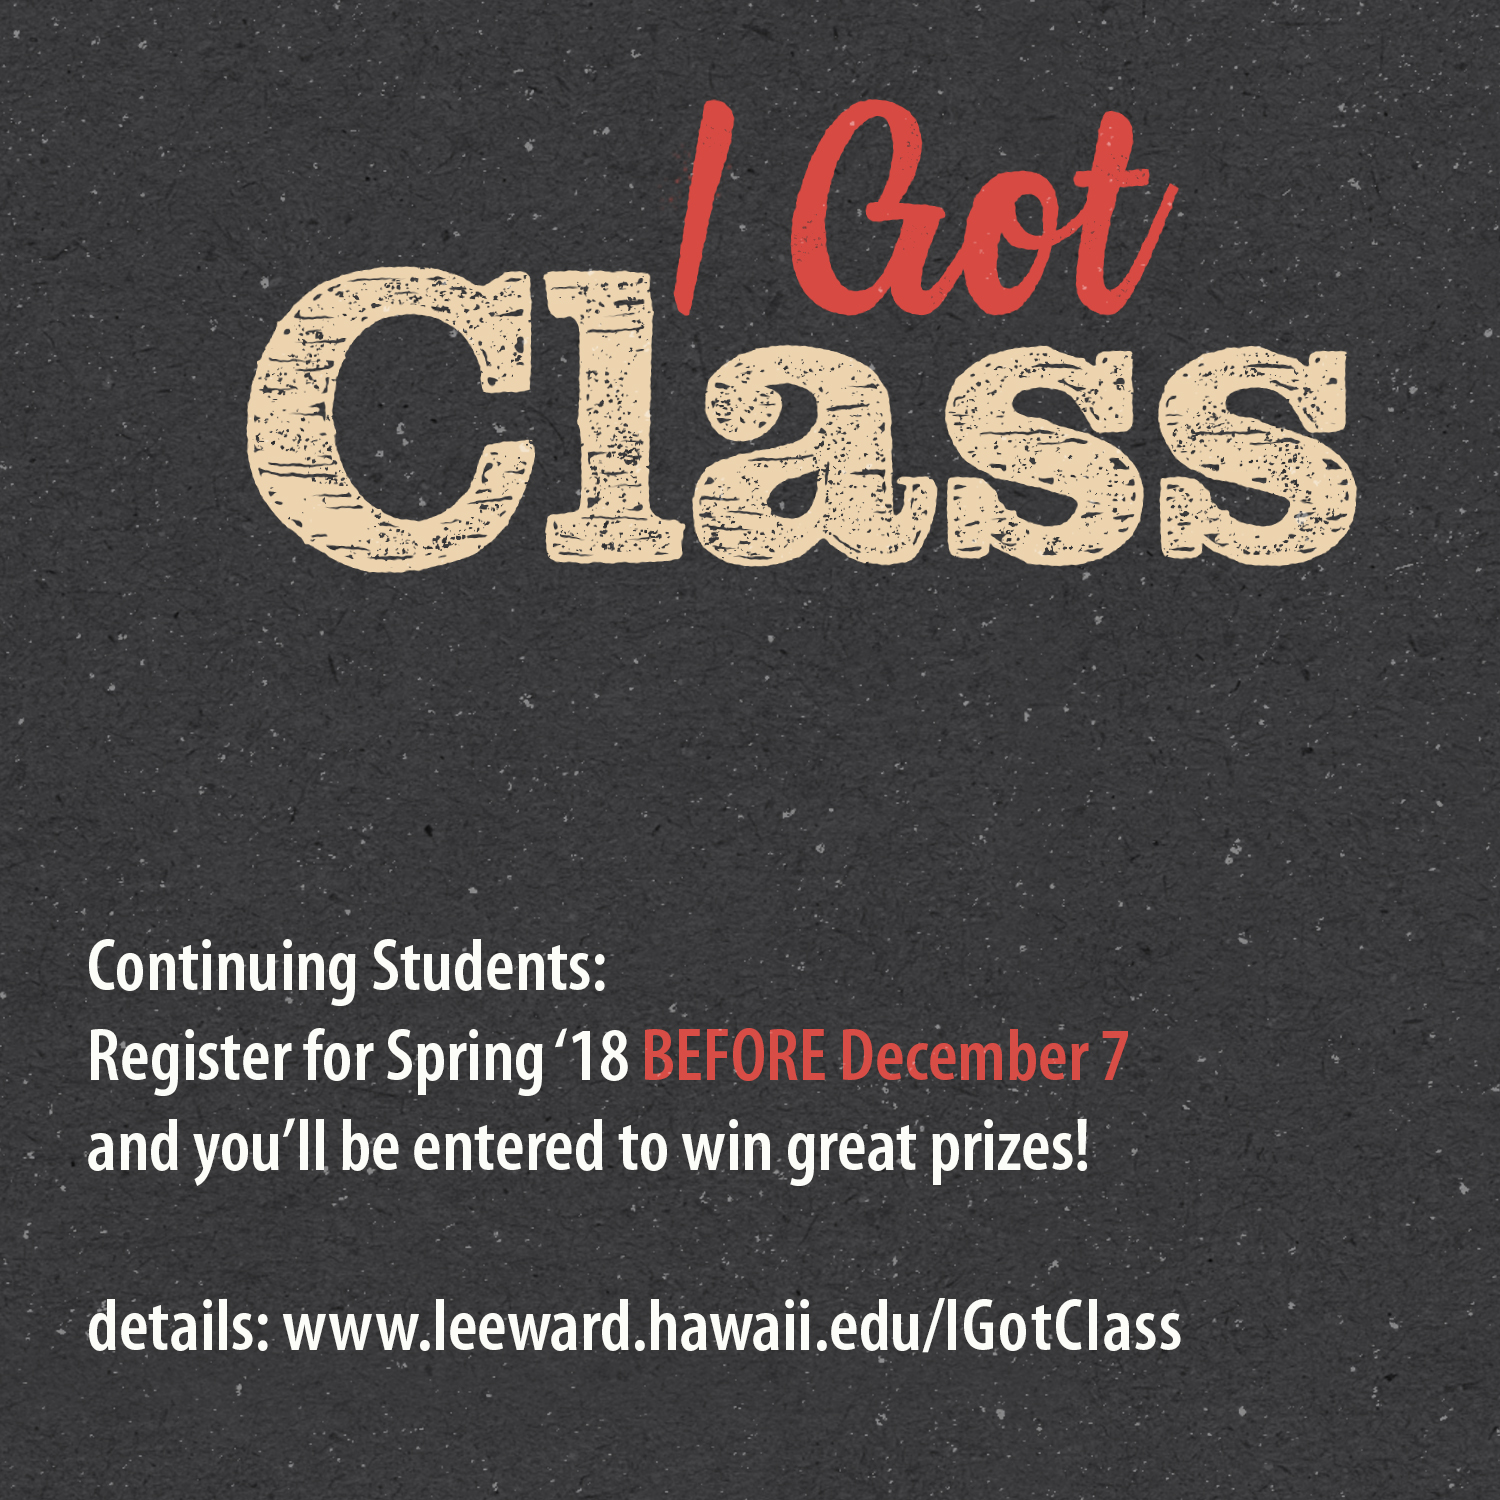 I Got Class Continuing Students register before December 7 to enter to win prizes